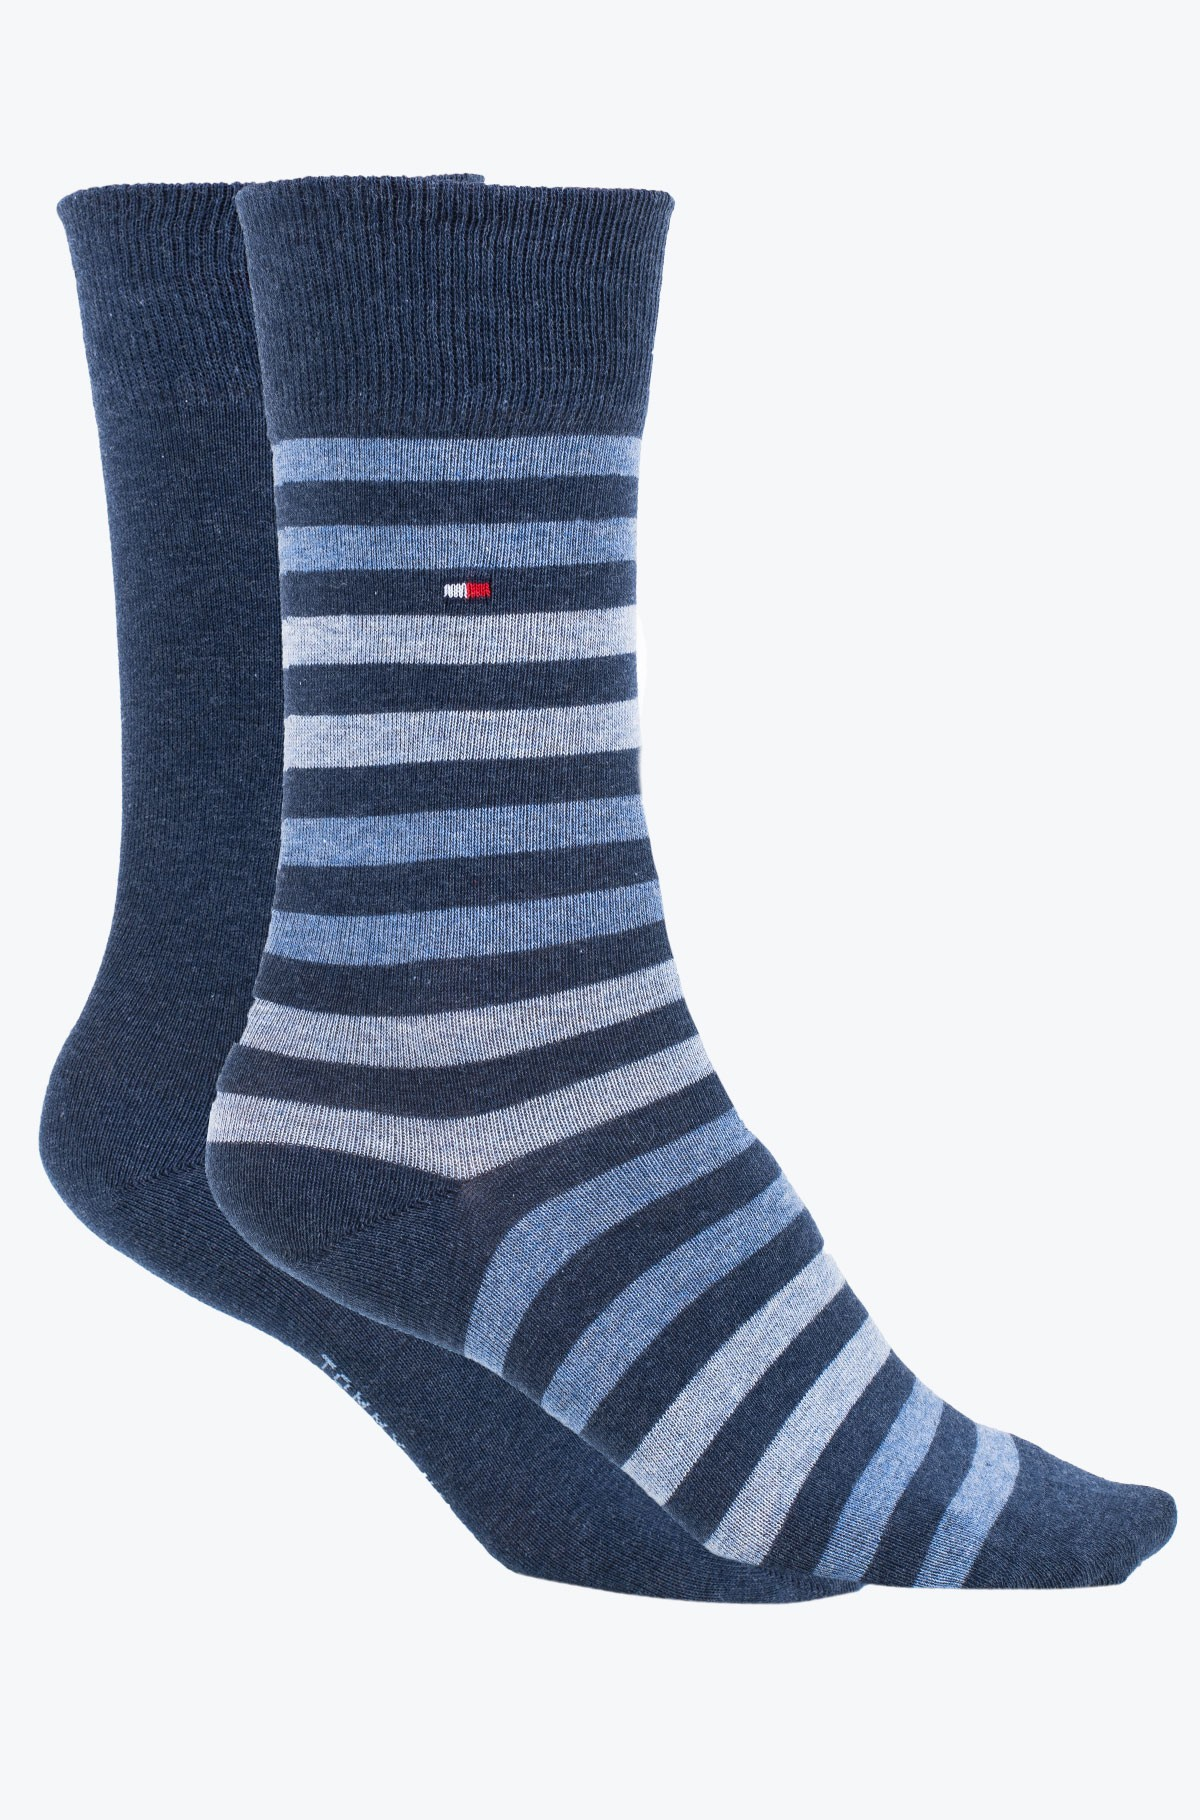 Socks 472001001-full-1